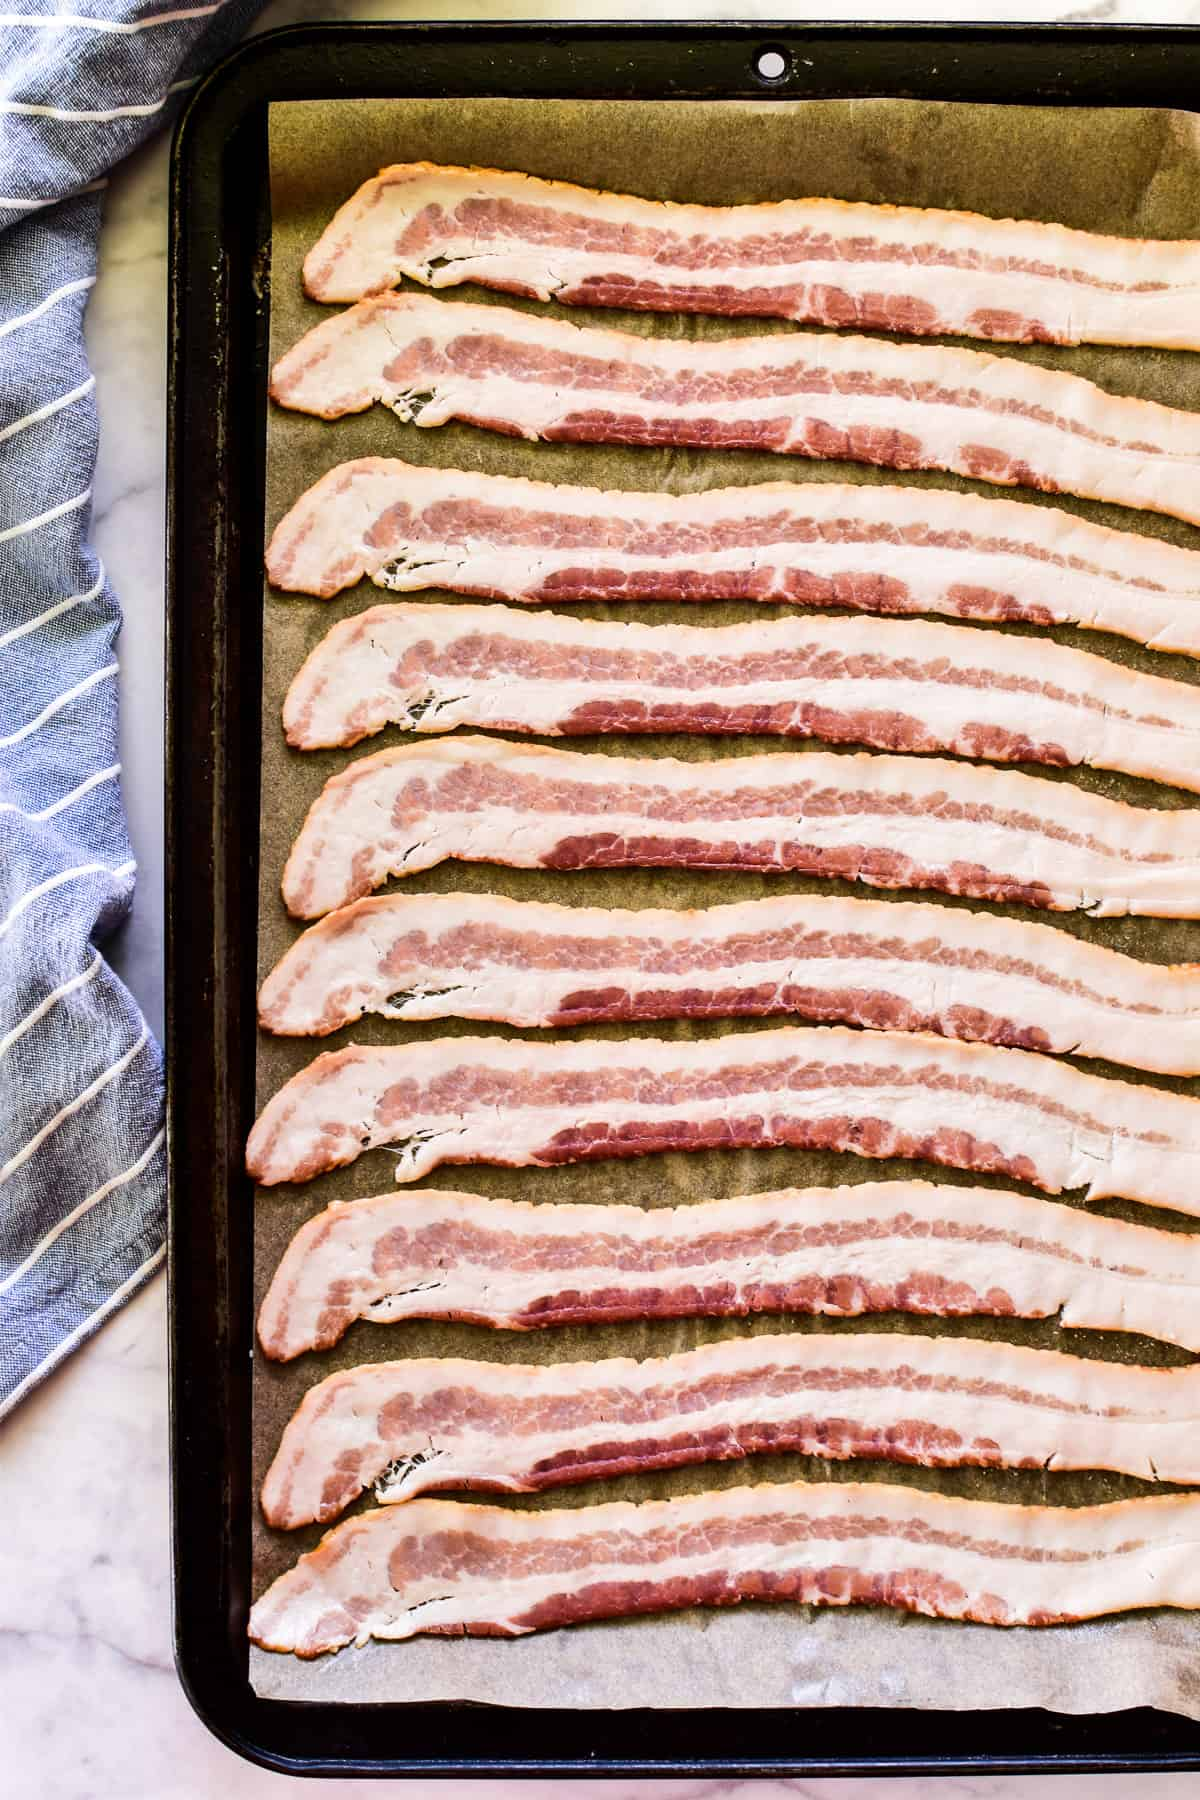 Raw bacon on baking sheet with parchment paper